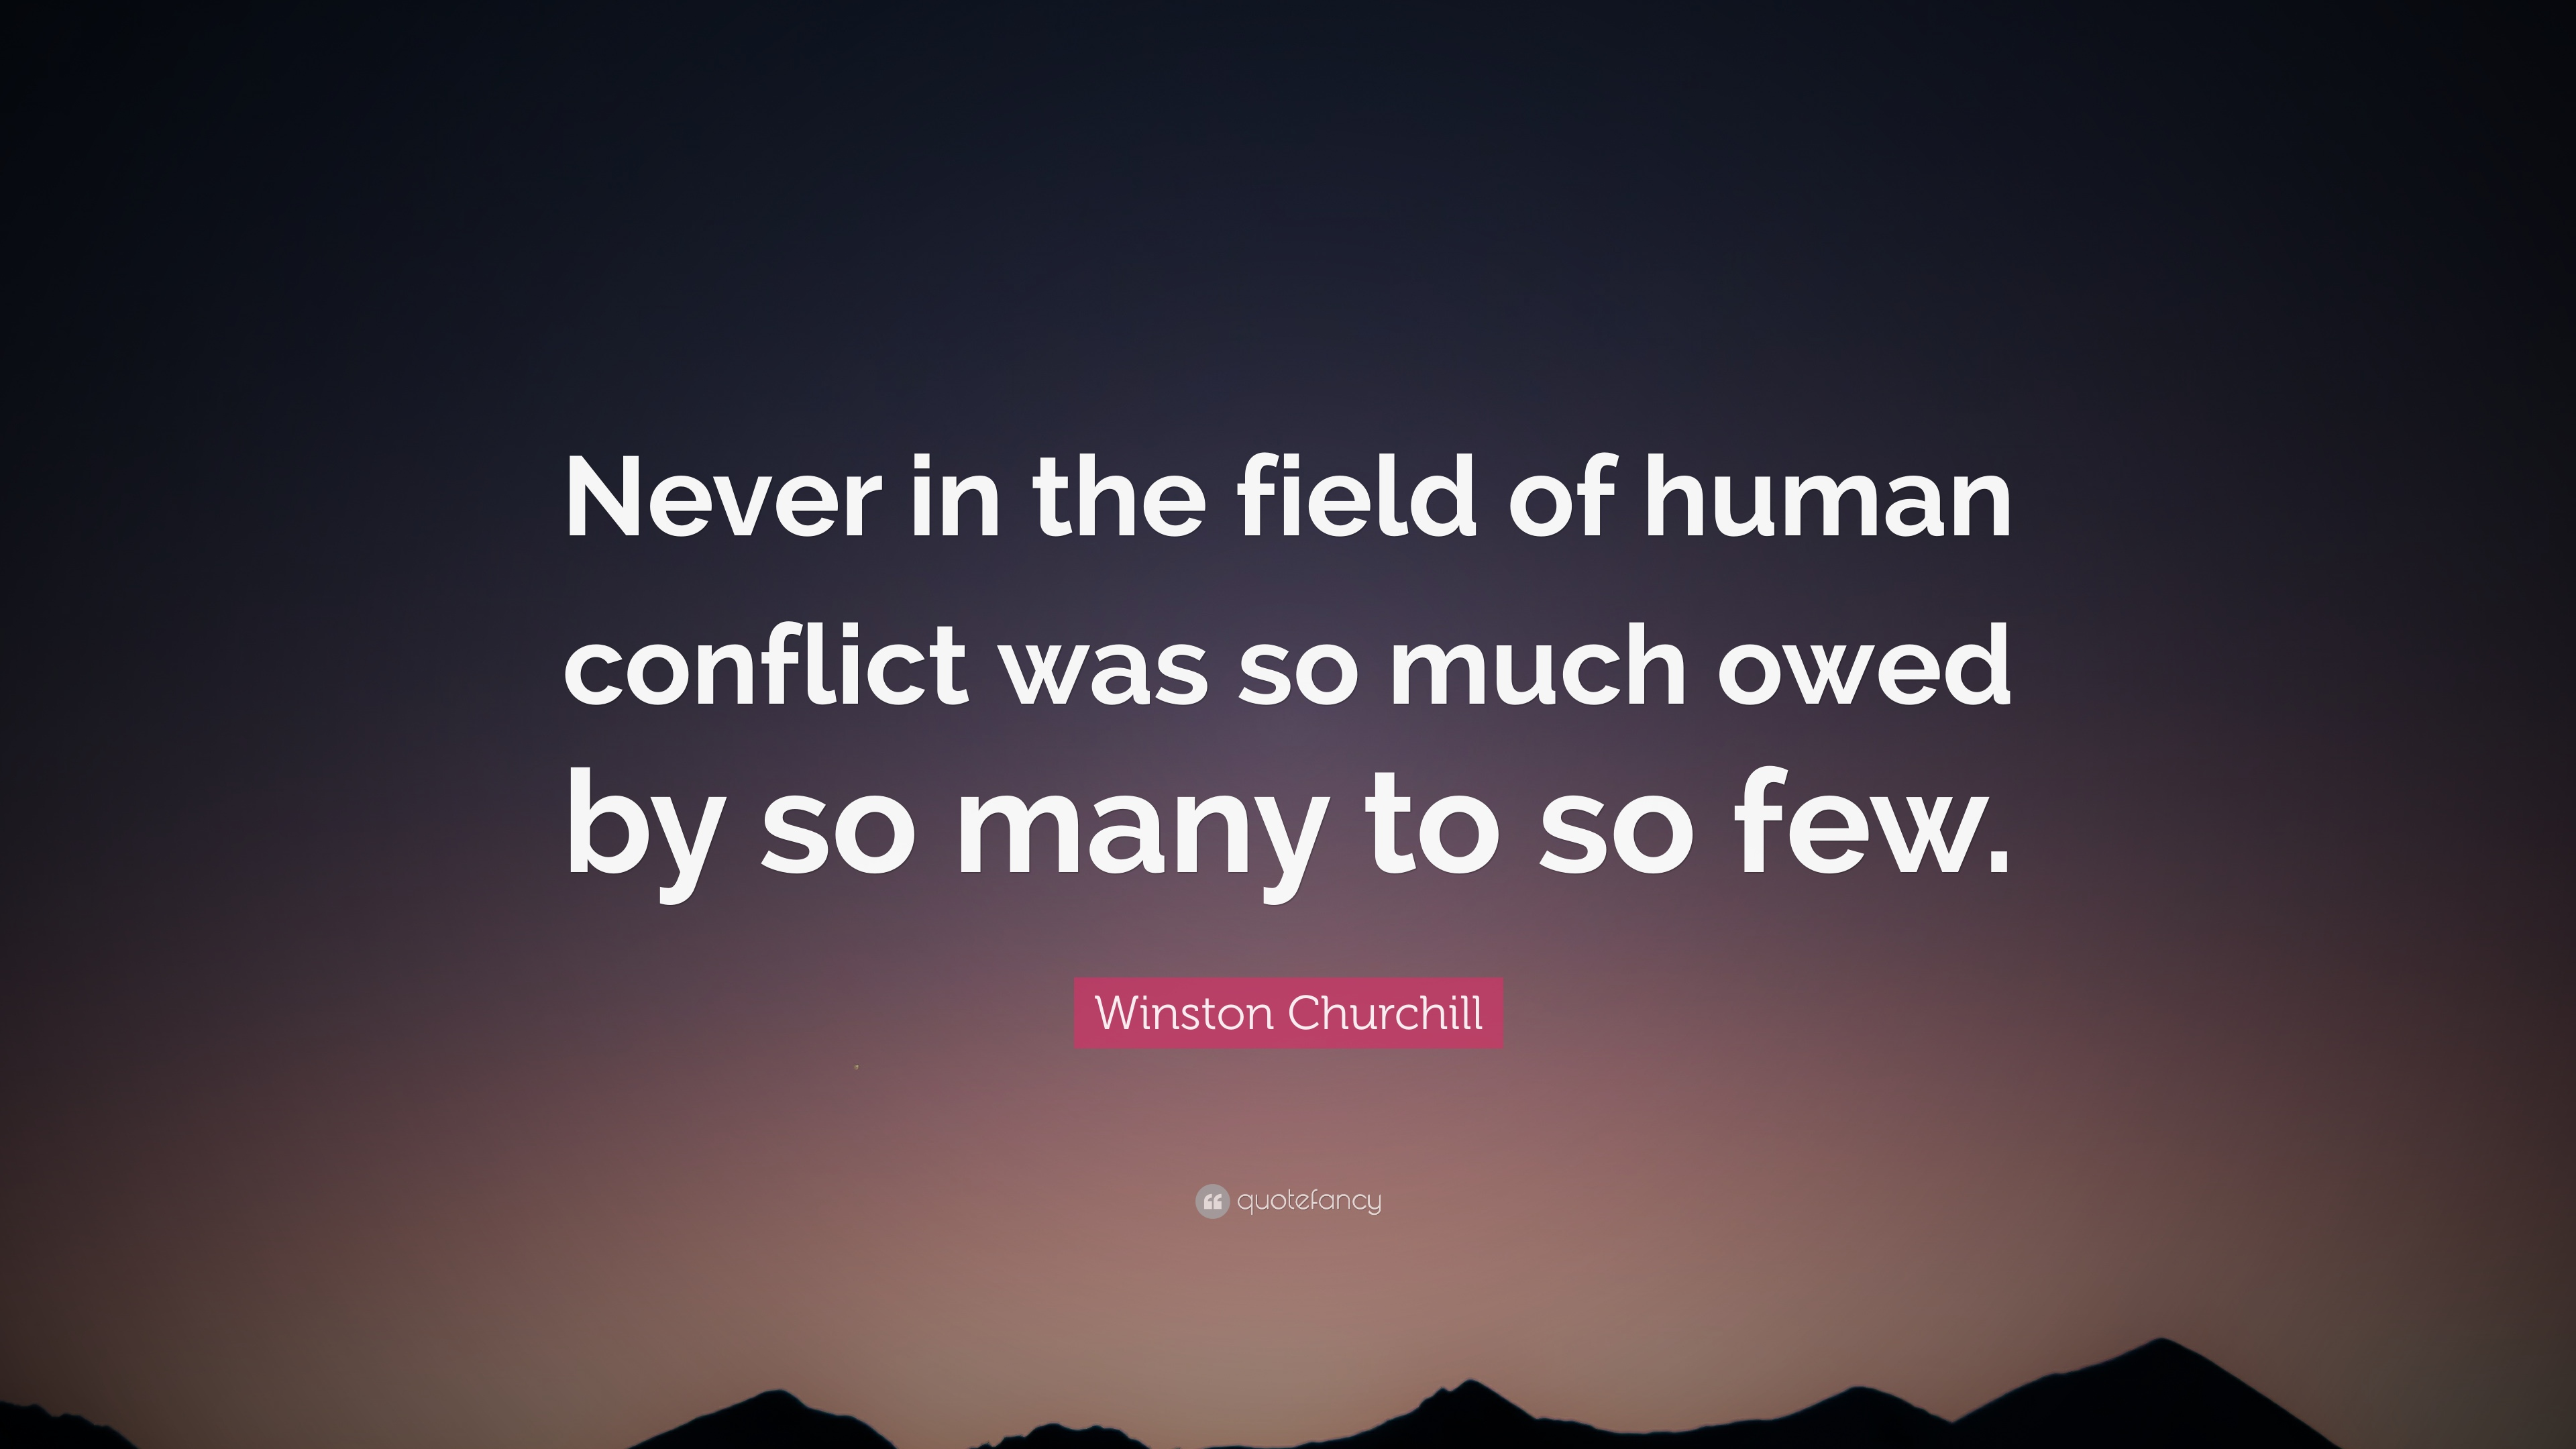 human conflict He teaches classes on modern warfare (the vietnam war, imperial wars of the 19th-20th century), early modern english warfare (tudor-stuart england, 18th-19th century england), and the history of human conflict (the history of war).